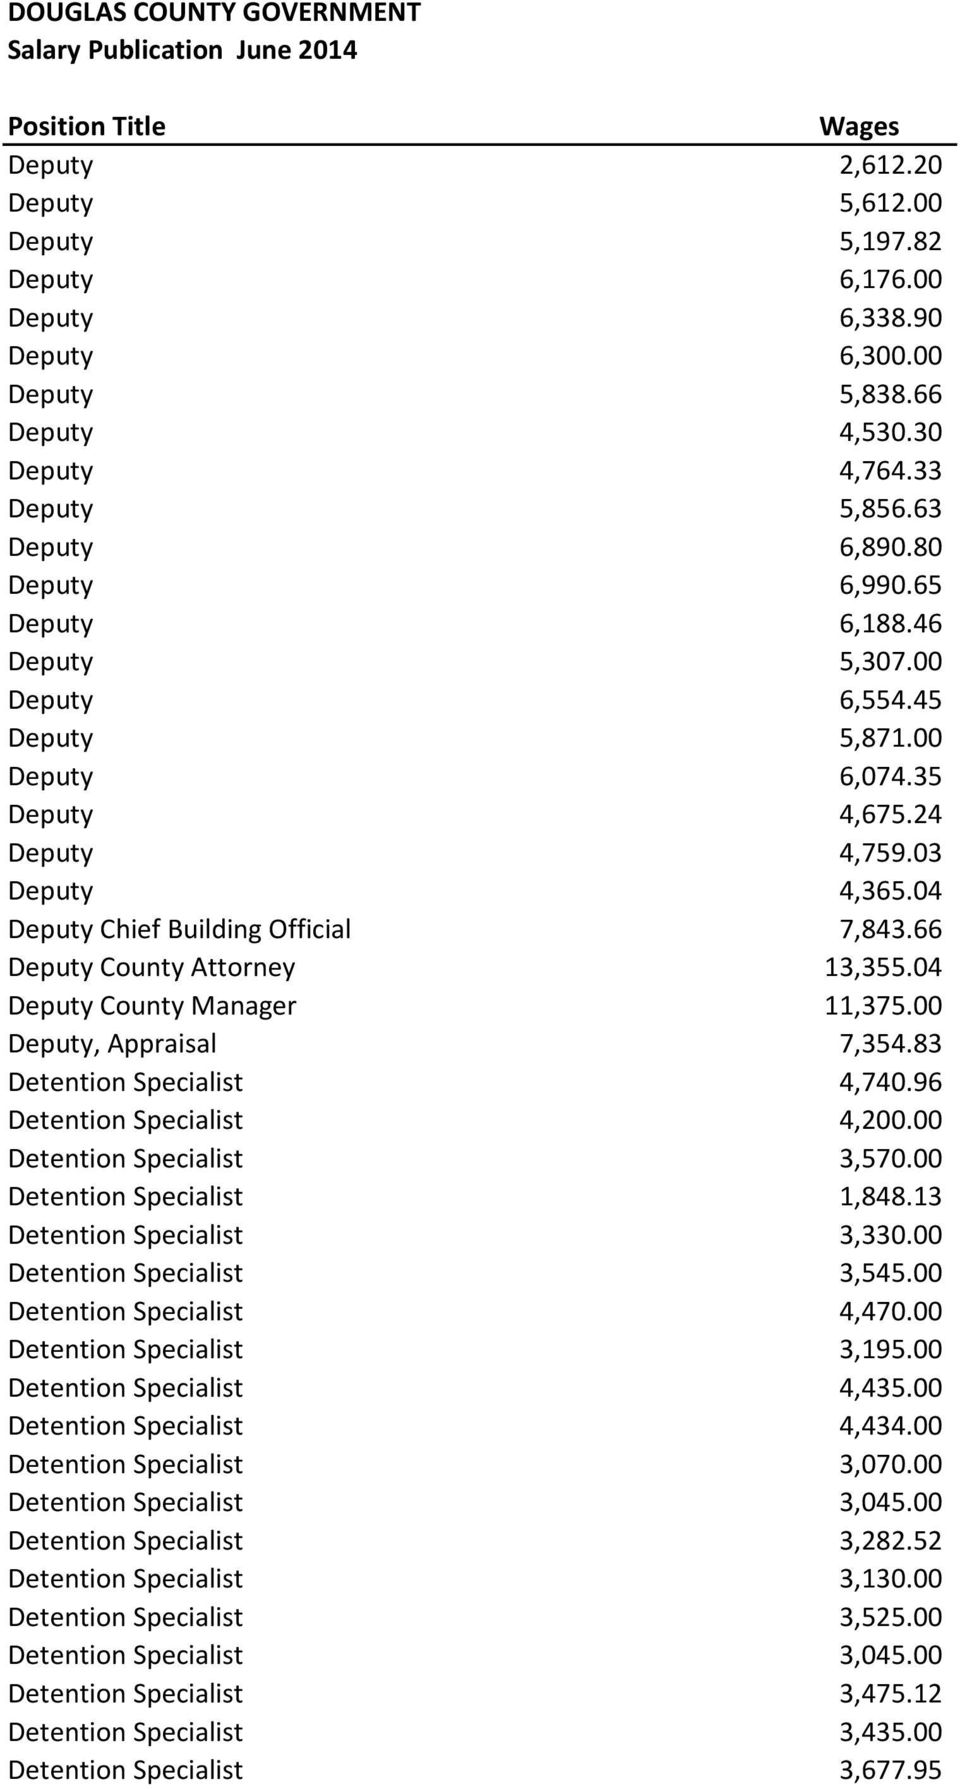 66 Deputy County Attorney 13,355.04 Deputy County Manager 11,375.00 Deputy, Appraisal 7,354.83 Detention Specialist 4,740.96 Detention Specialist 4,200.00 Detention Specialist 3,570.